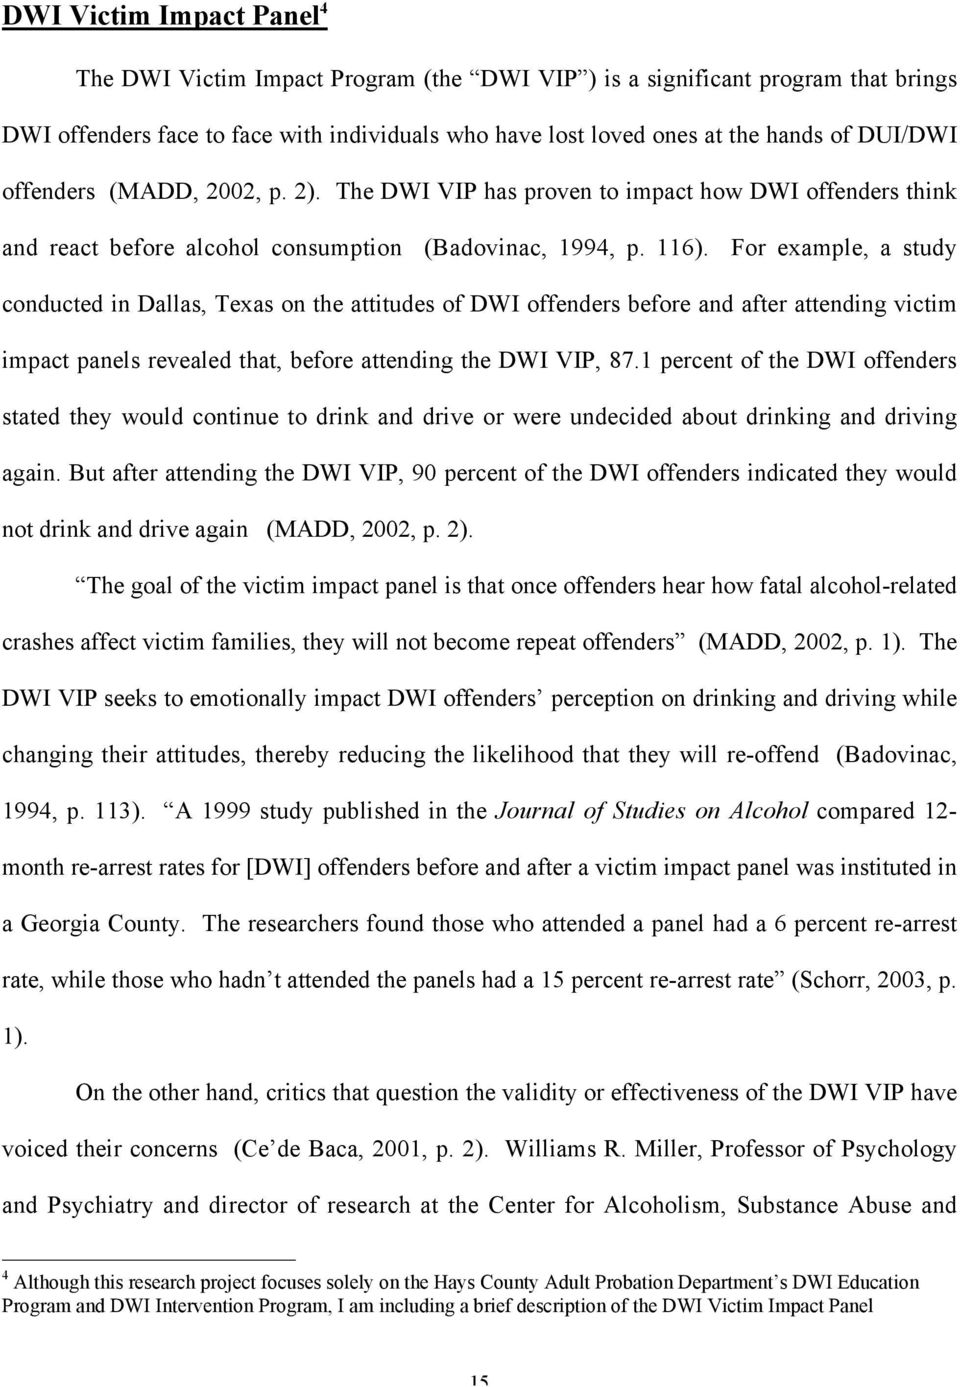 For example, a study conducted in Dallas, Texas on the attitudes of DWI offenders before and after attending victim impact panels revealed that, before attending the DWI VIP, 87.